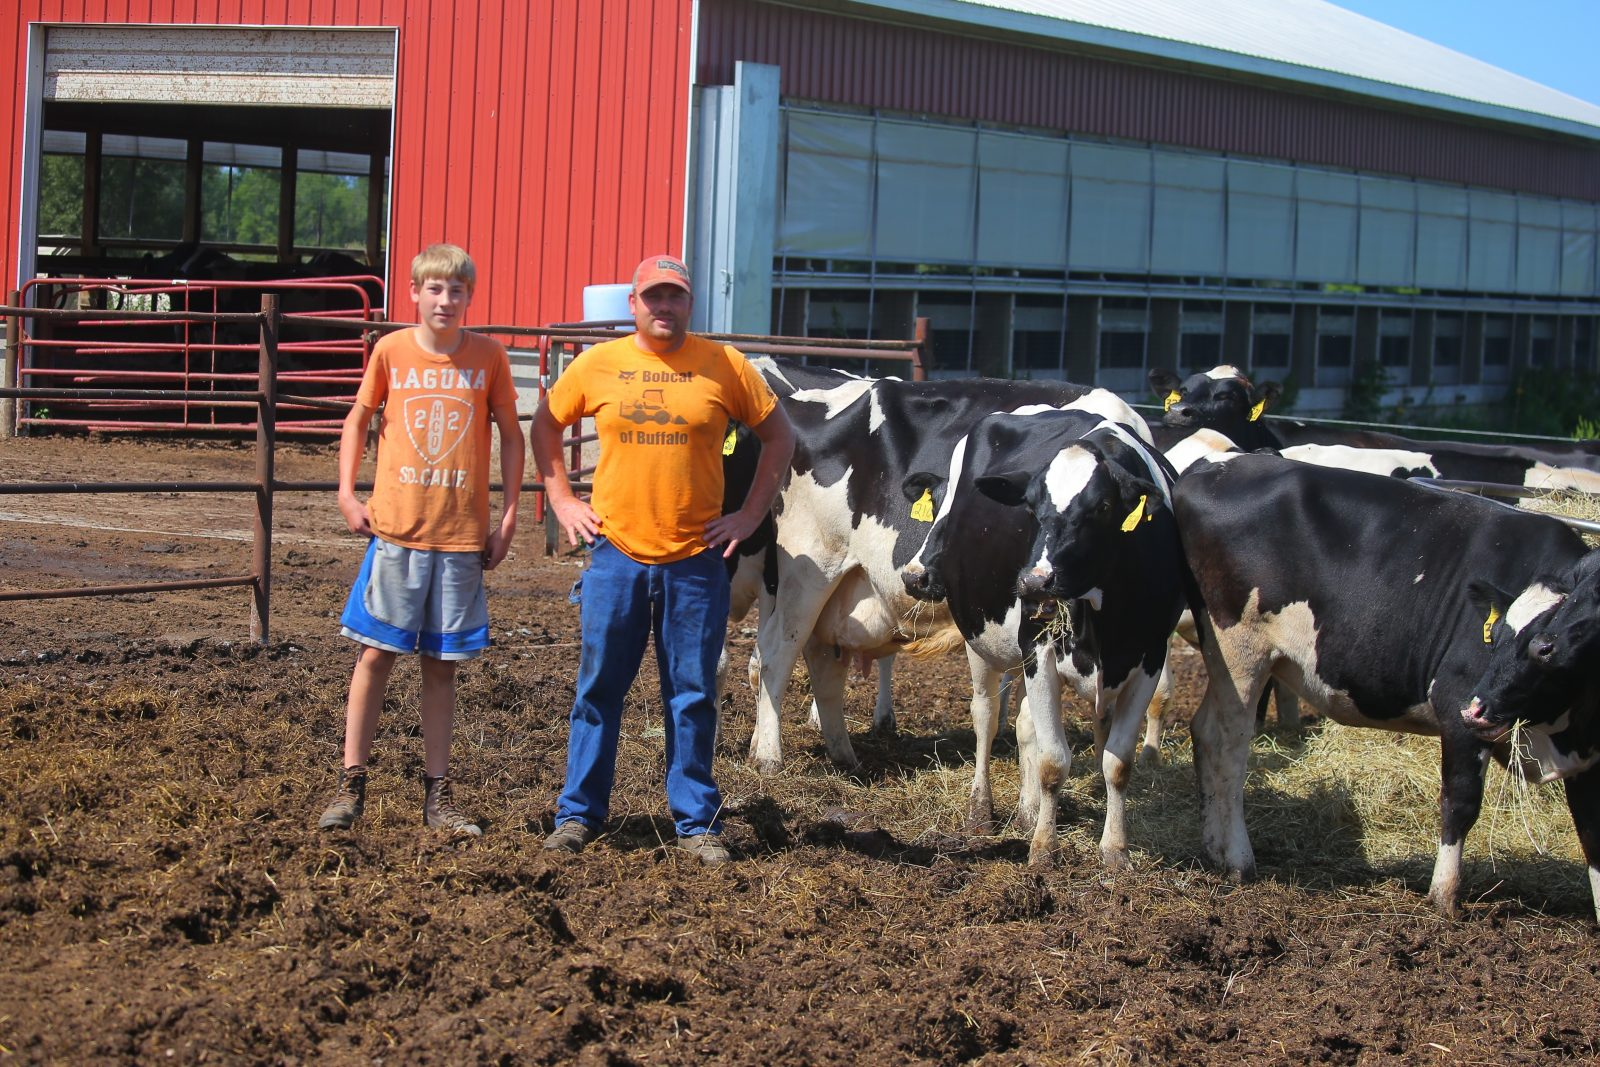 Tyler Wight, 13, and his father, Darren, with their cows at Wight Farm in Akron. (John Hickey/Buffalo News)